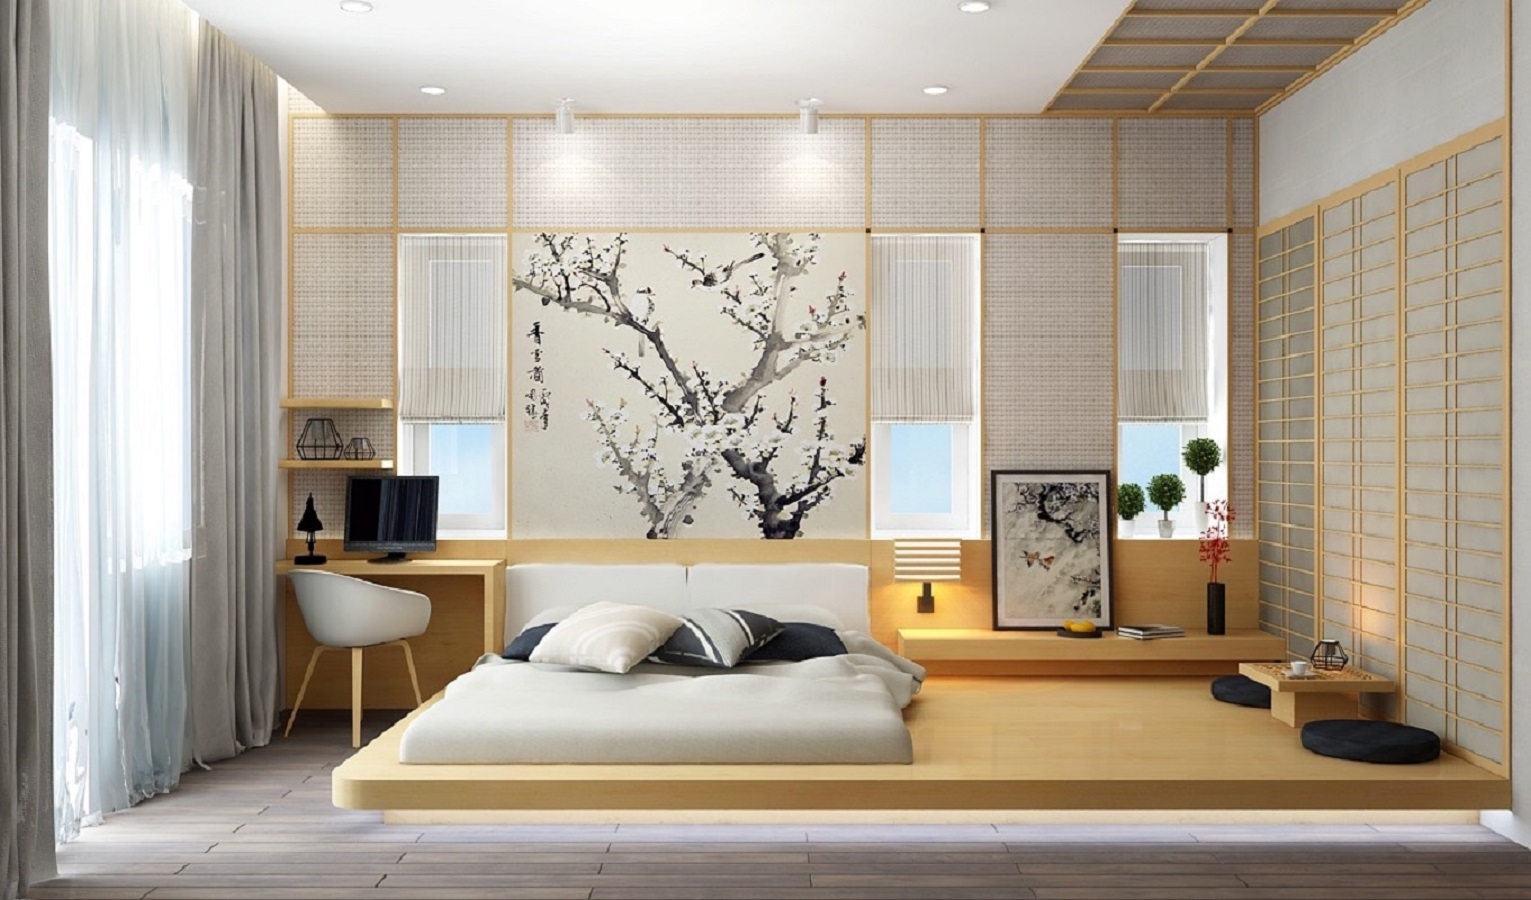 Japan minimalist bedroom Charismatic Minimalist Bedroom Ideas That Low On Clutter But Big On Style